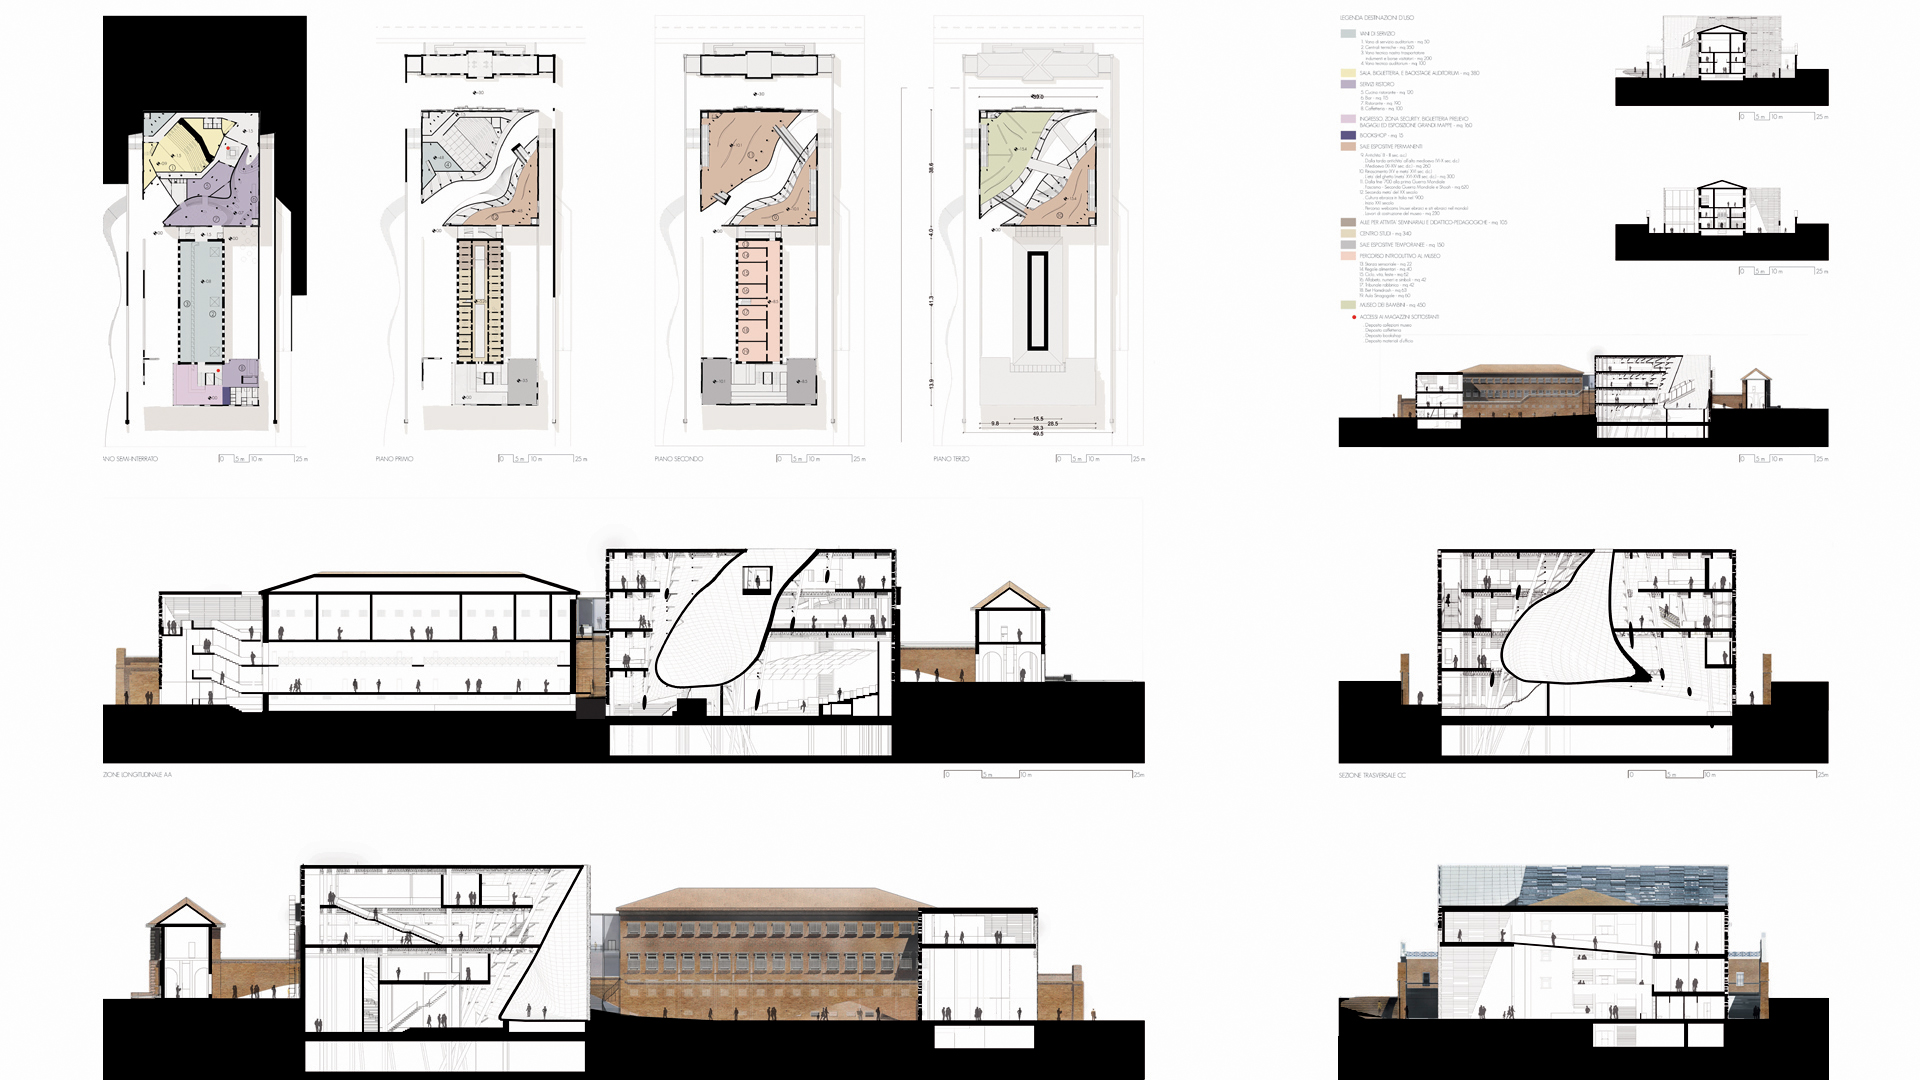 Urban Void Meis Competition Alfonso Architetti Project